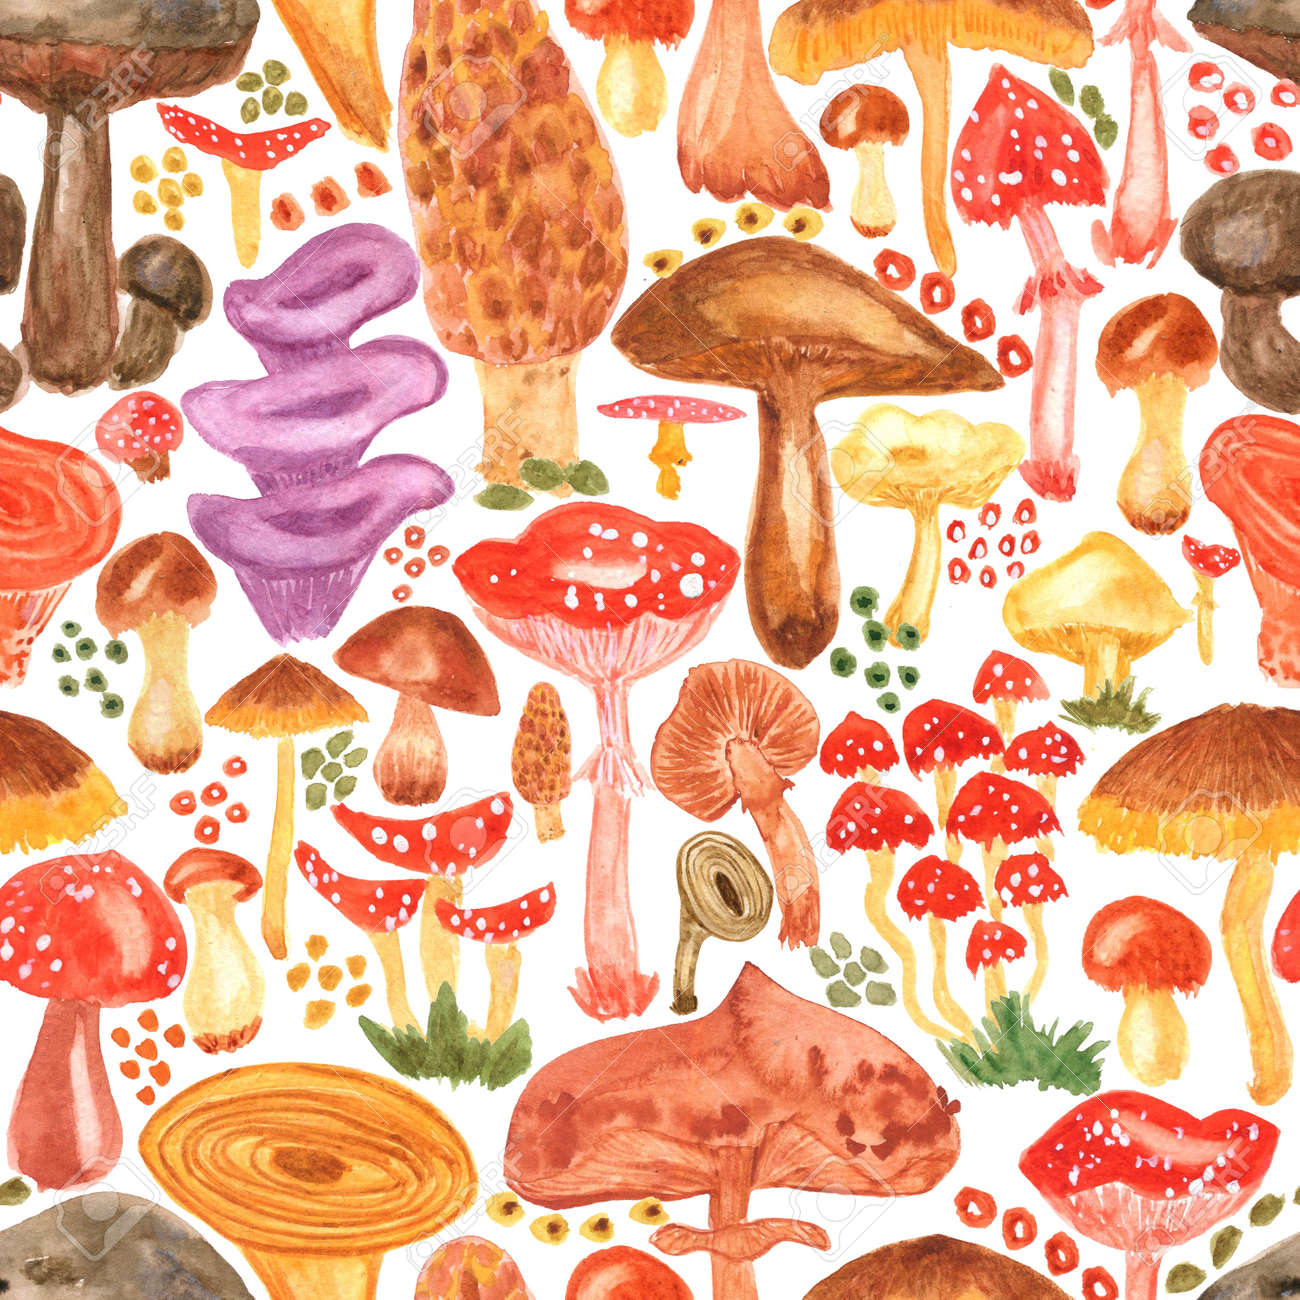 Colorful watercolor mushrooms seamless pattern. Hand Illustration for creating fabrics, wallpapers, gift wrapping paper, invitations, textile, scrapbooking. Isolated on white background. - 167408767